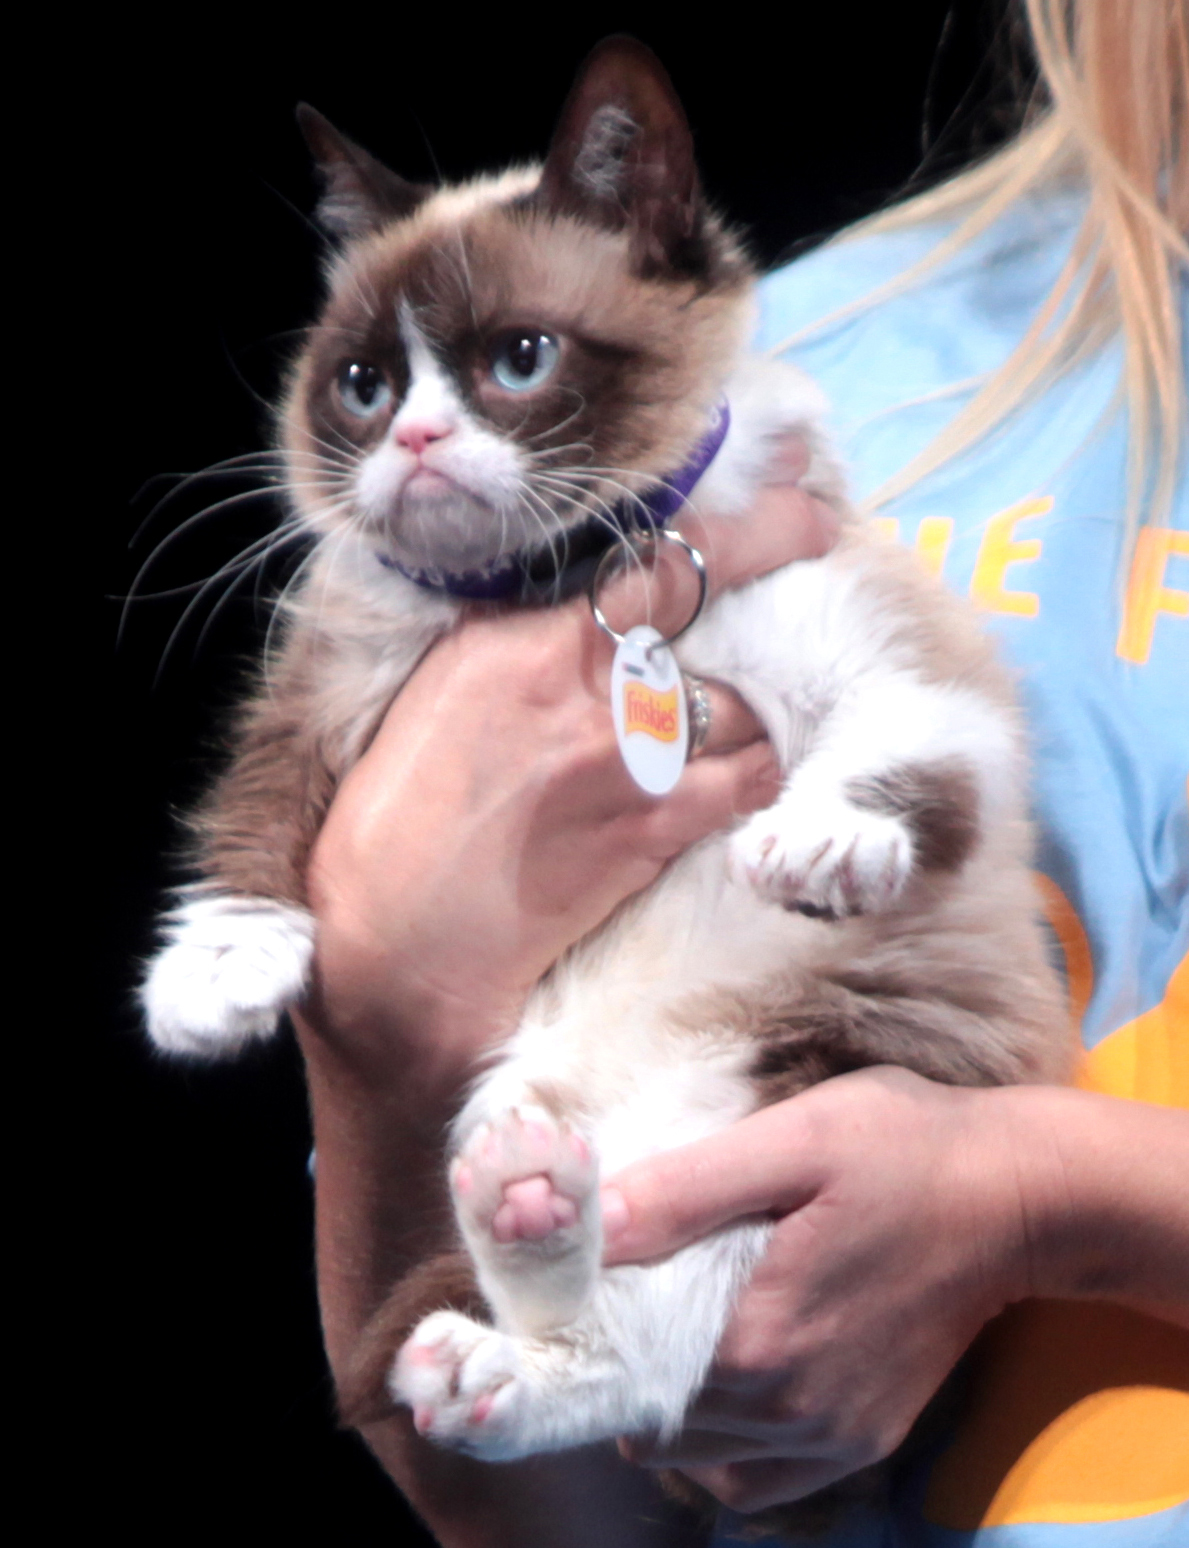 http://upload.wikimedia.org/wikipedia/commons/e/ee/Grumpy_Cat_by_Gage_Skidmore.jpg